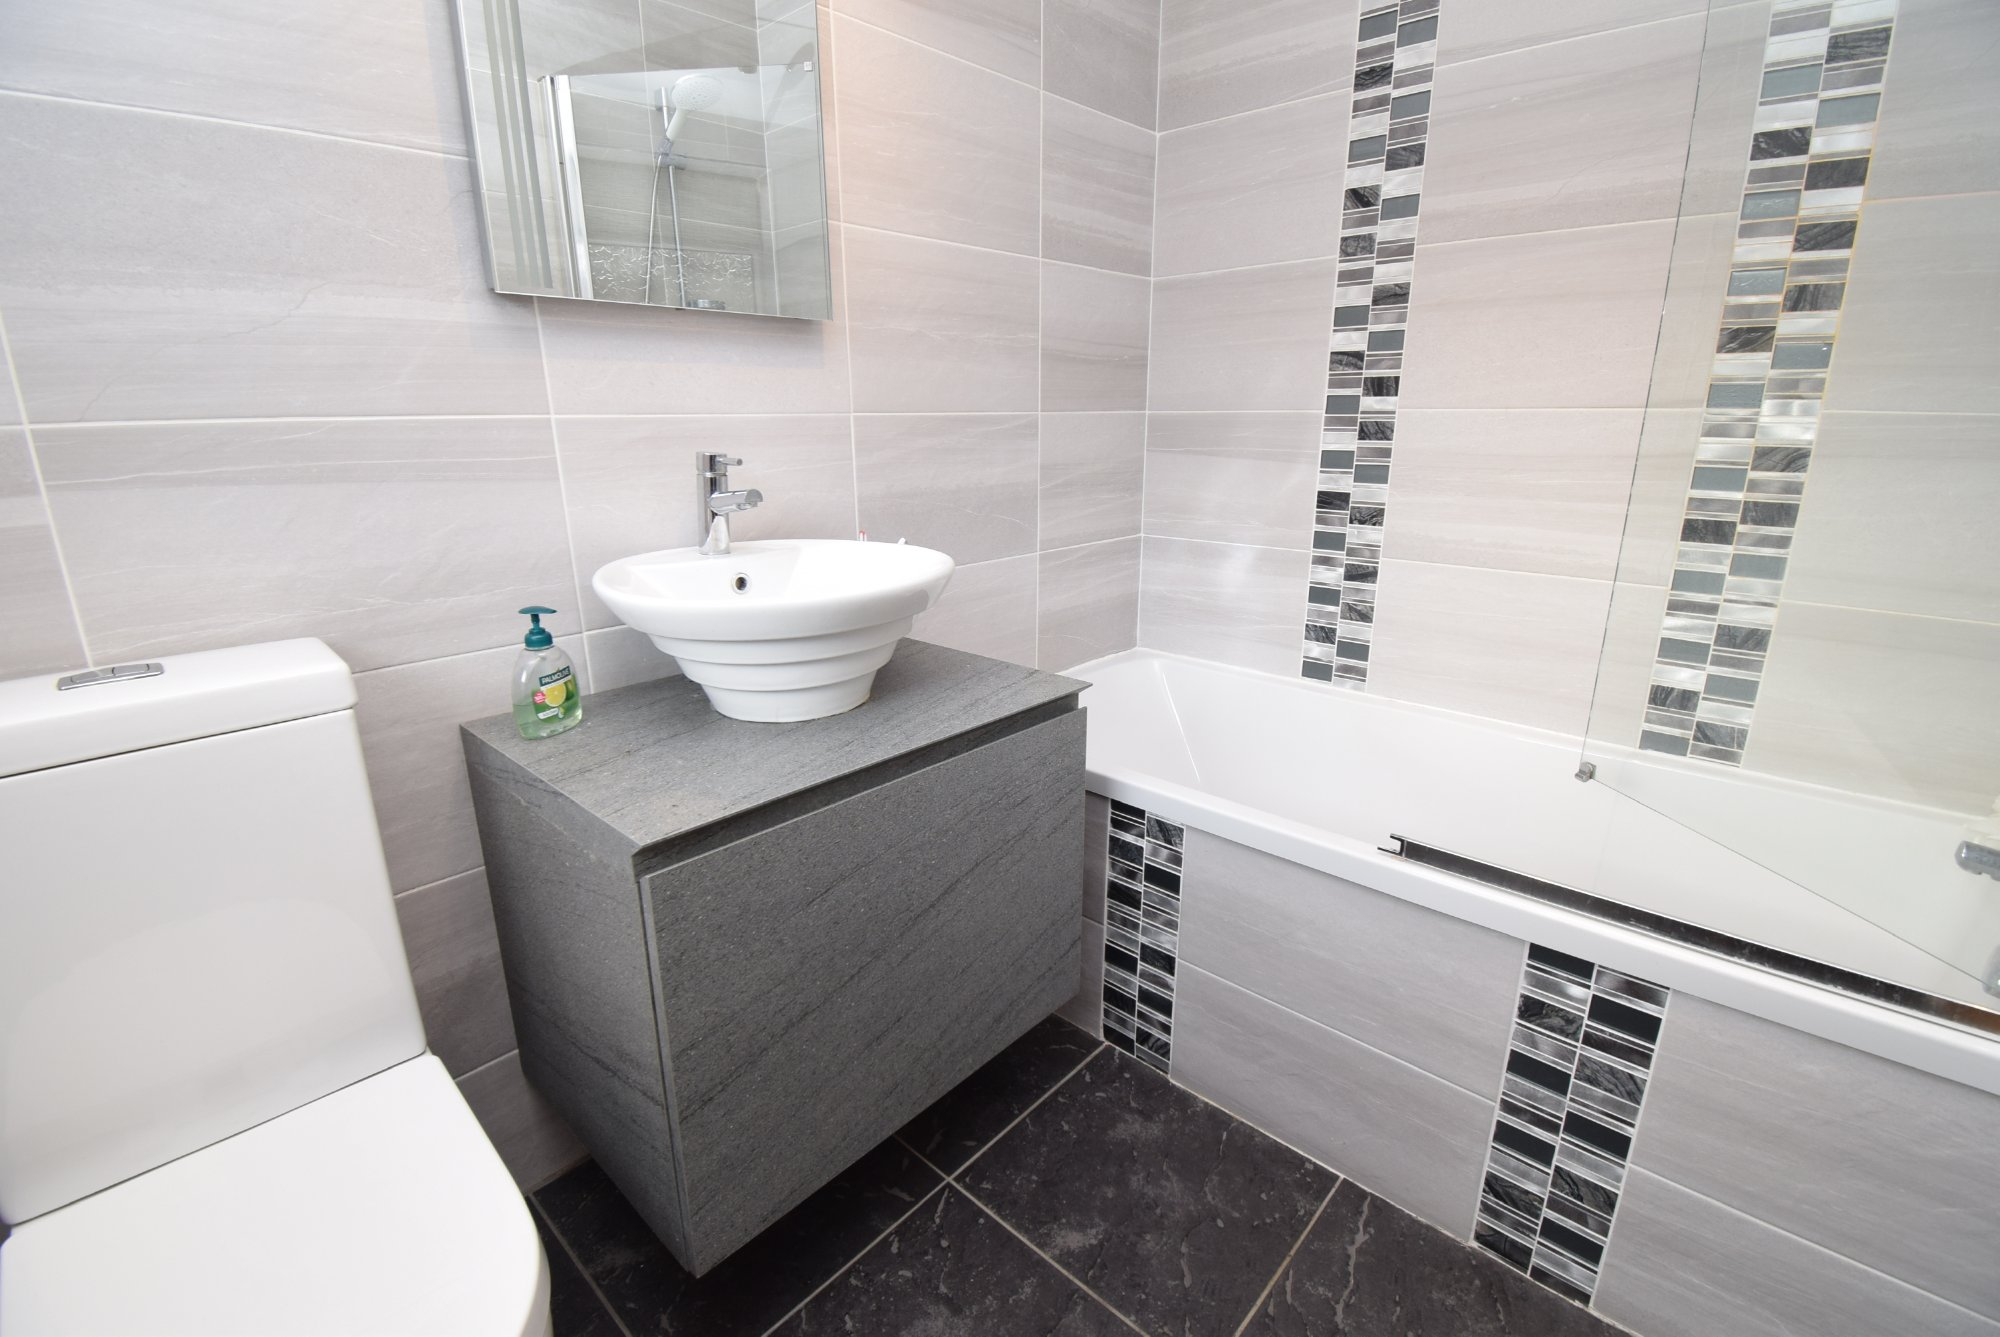 1 room in Portswood, Alma Road, Southampton, SO14 6UW RoomsLocal image